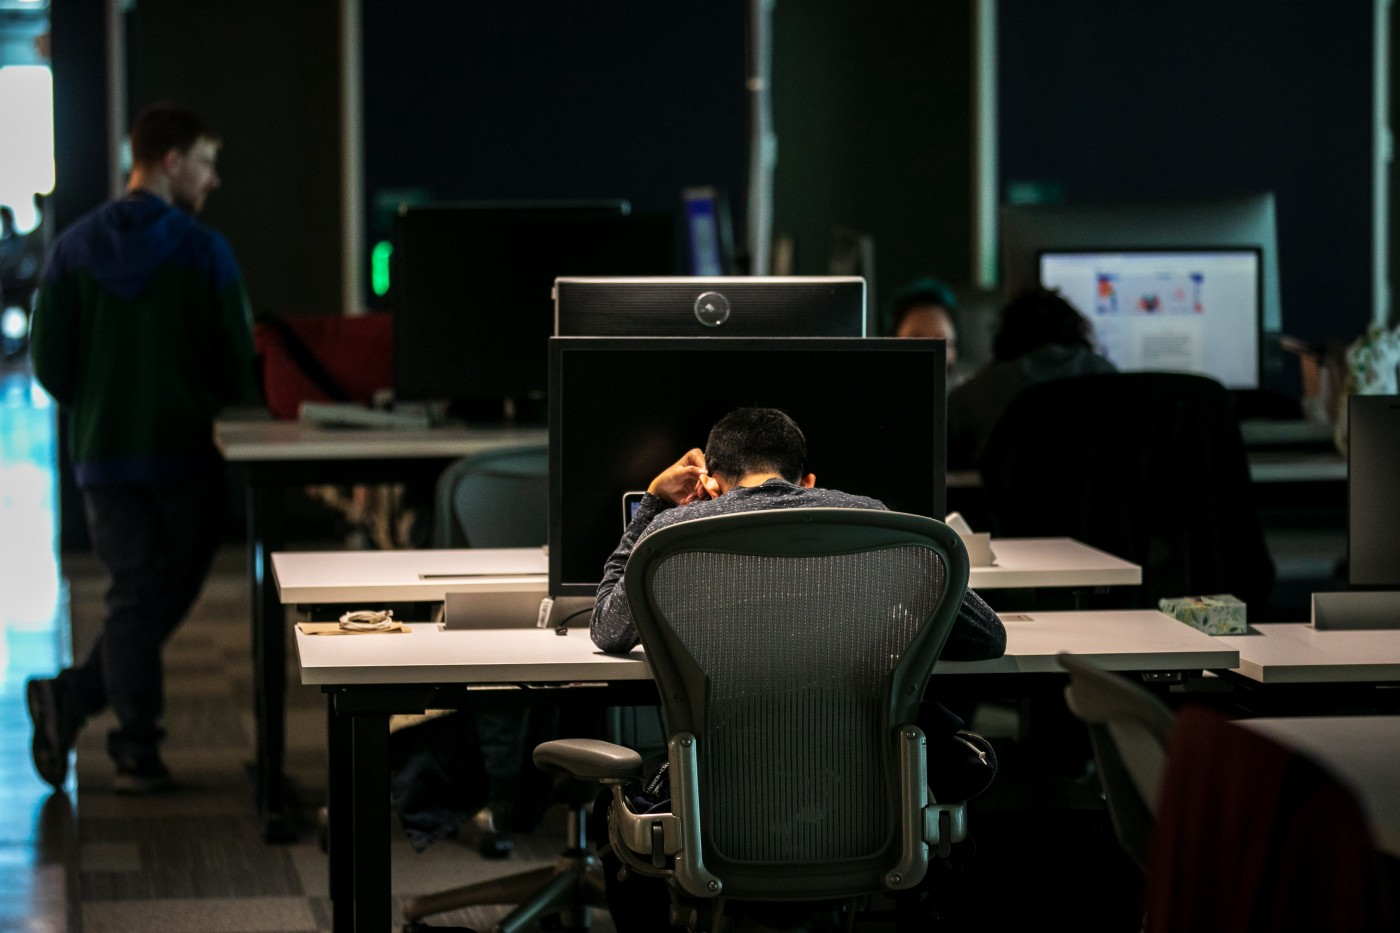 Content moderators work at a Facebook office in Austin, Texas.